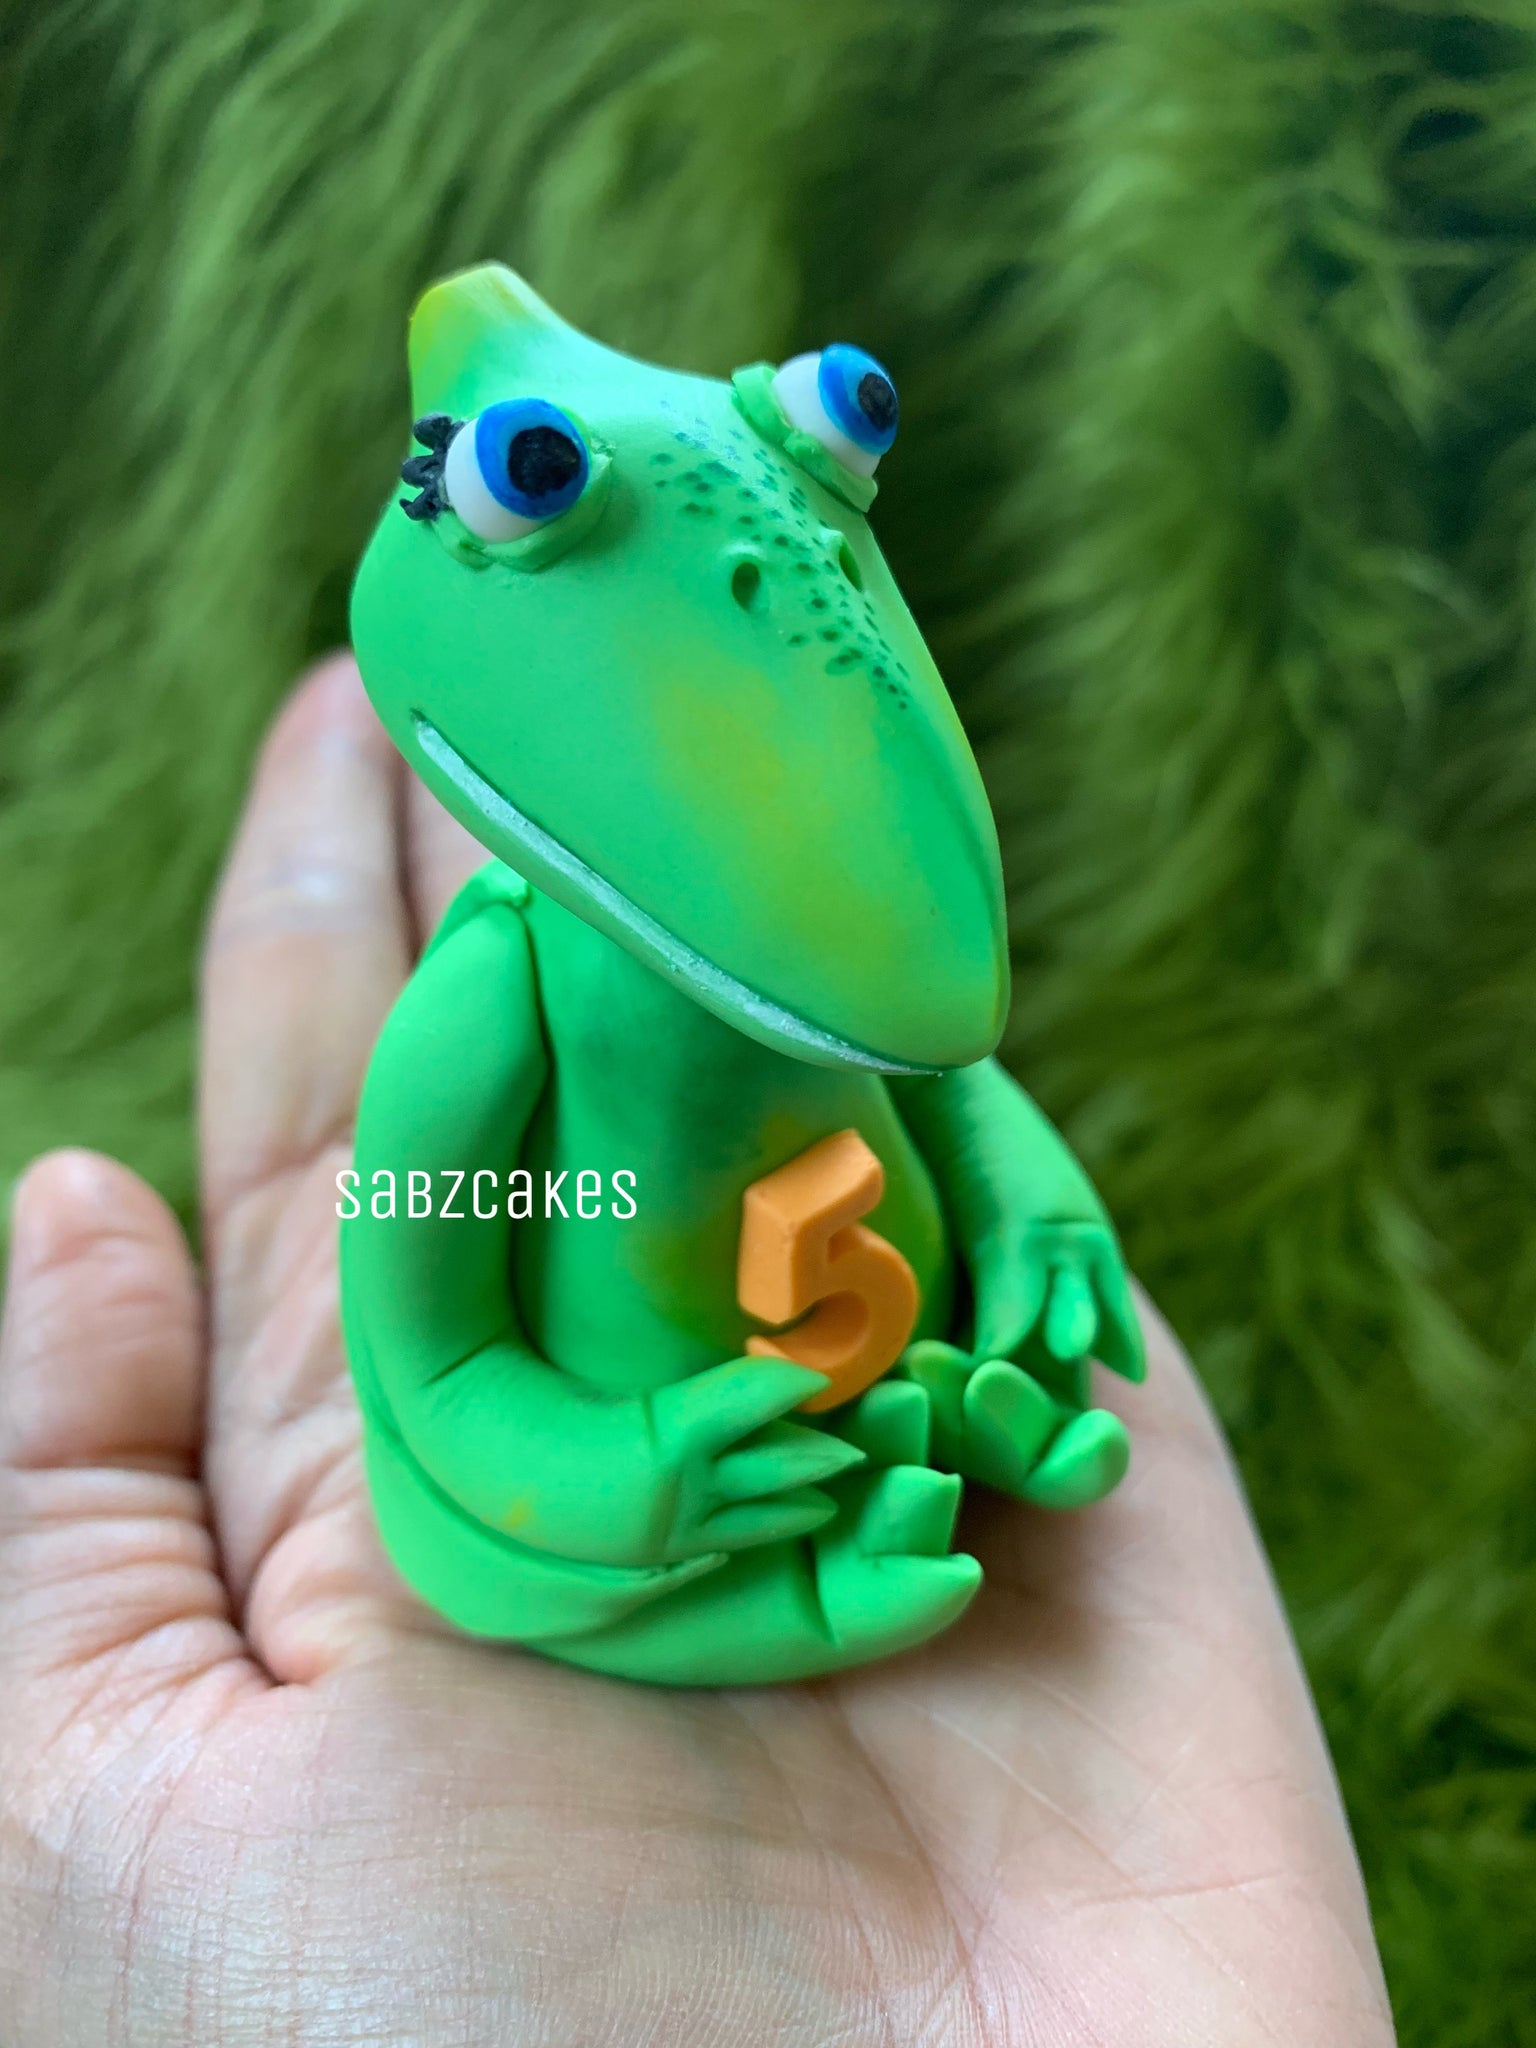 Edible fondant 3D Pterodactyl dinosaur figurine inspired from Dinosaur Train cake topper